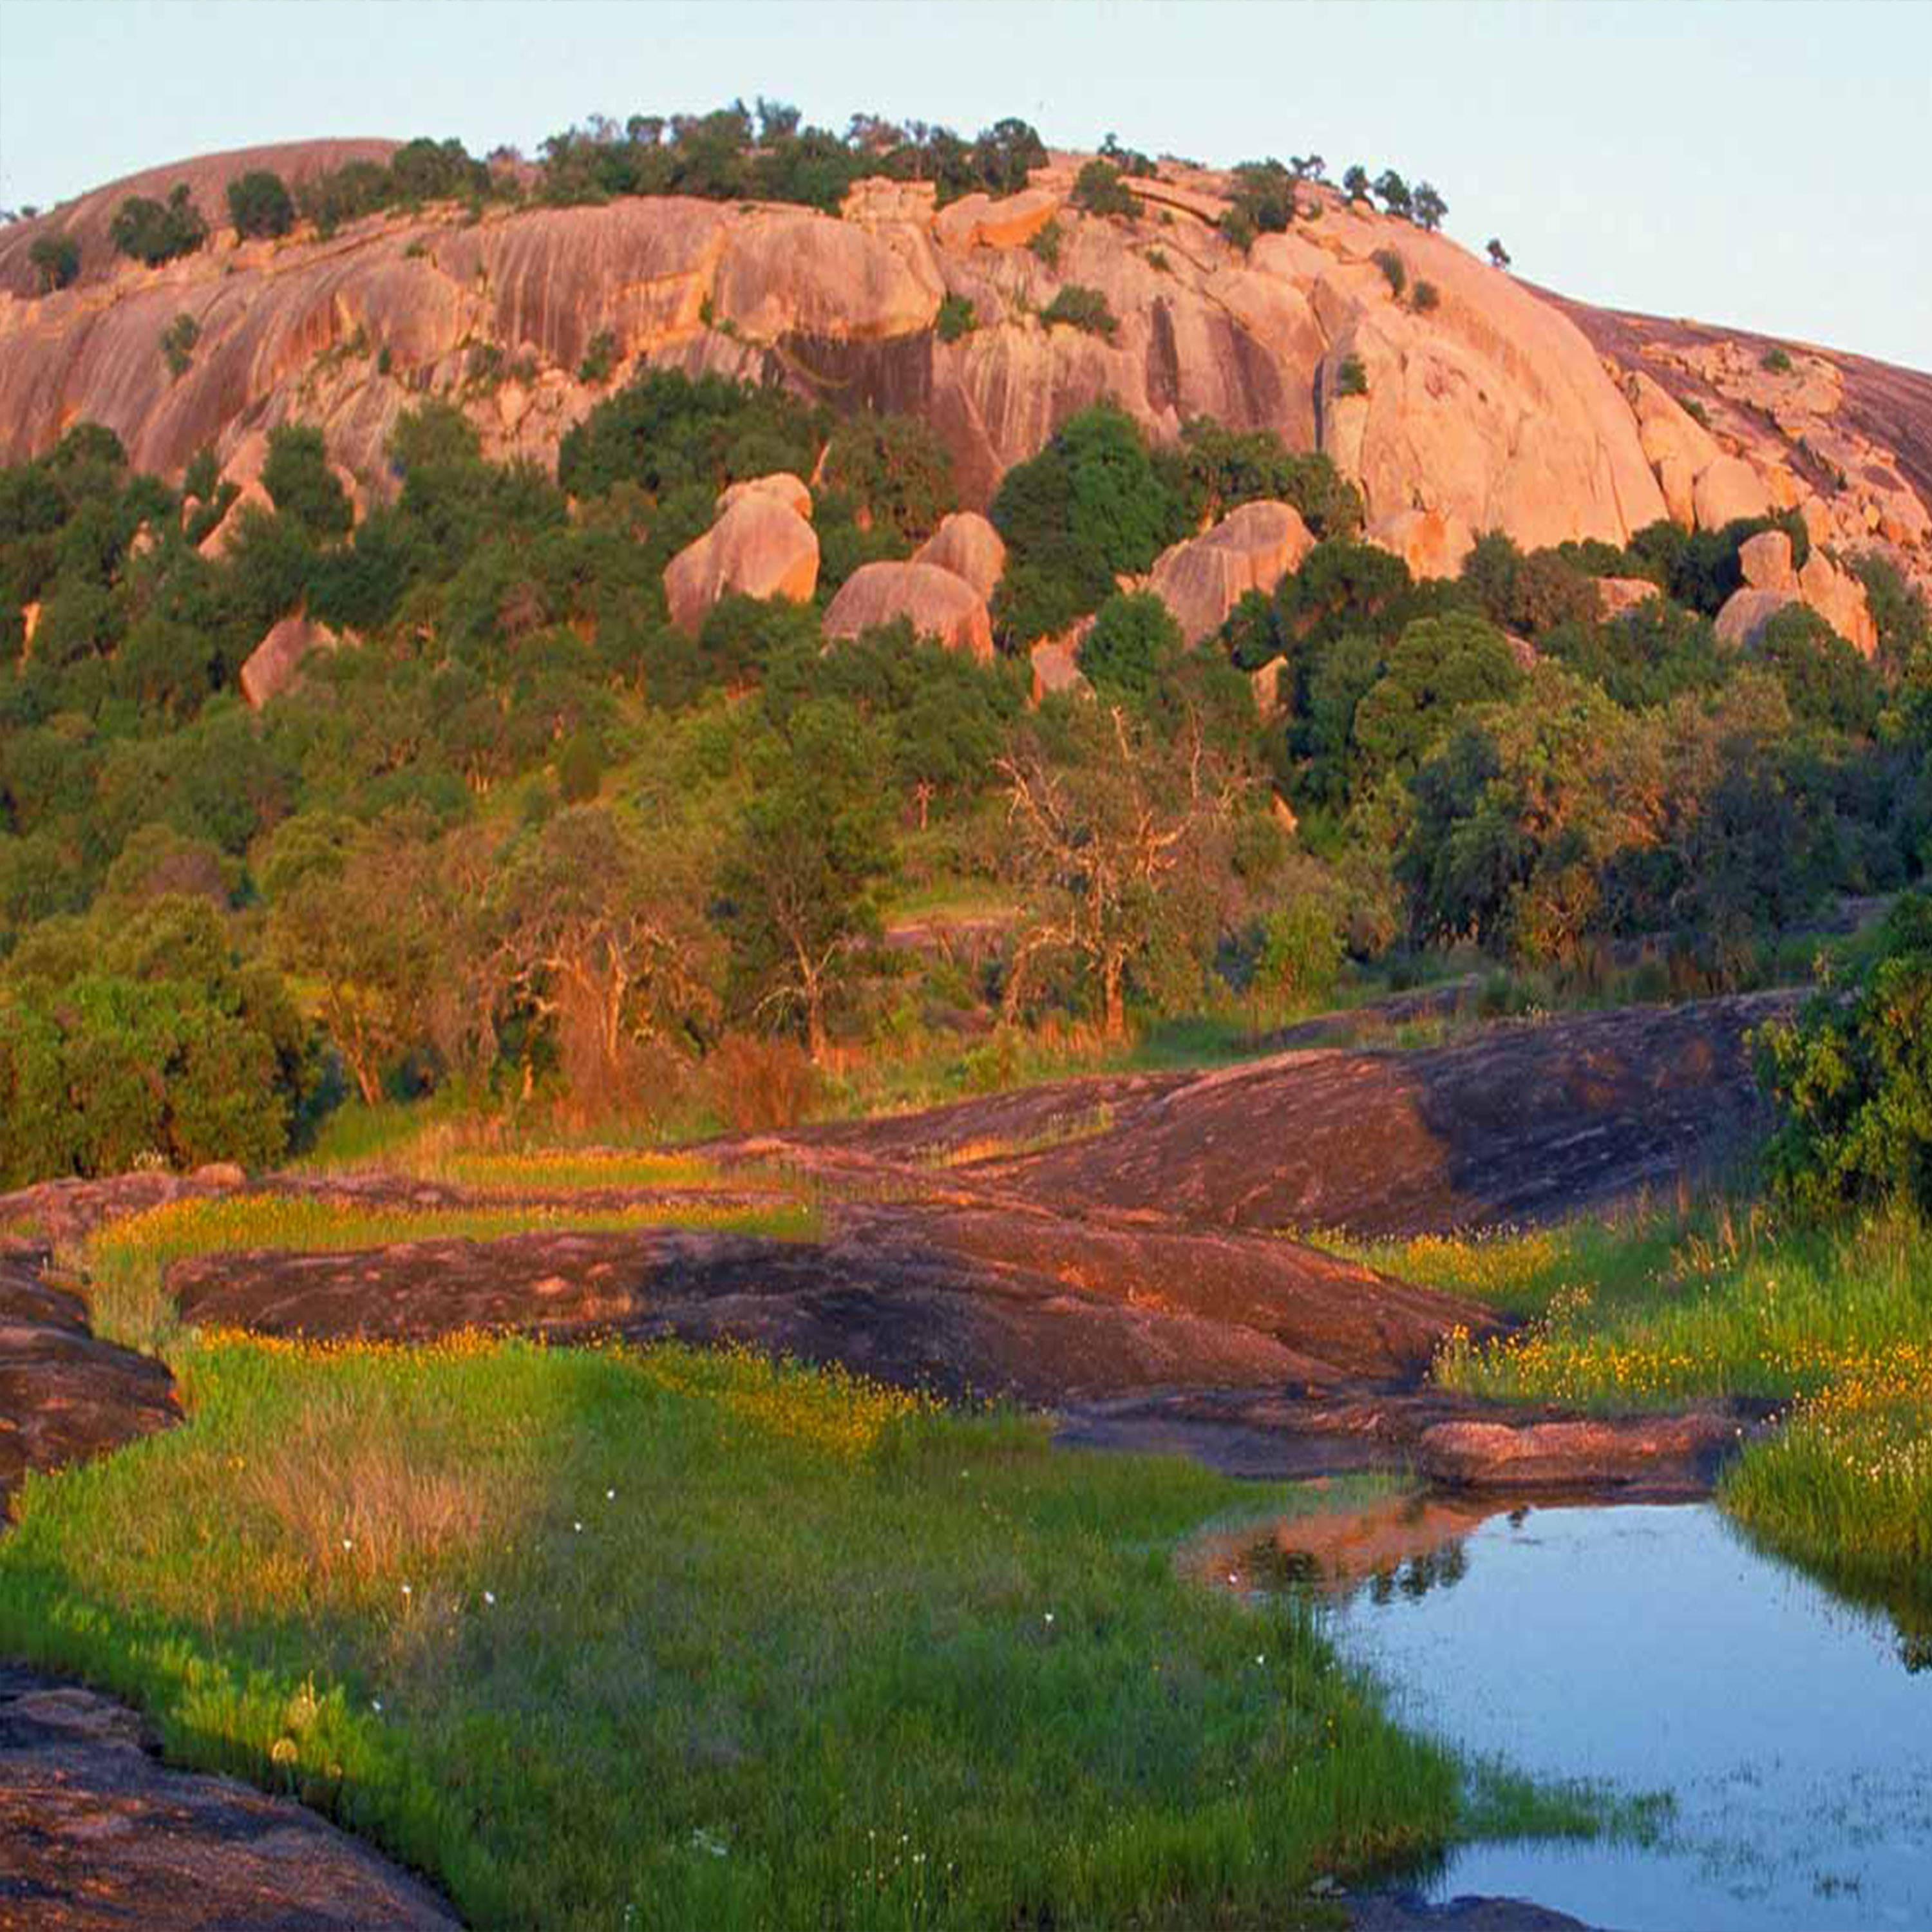 Enchanted Rock State Natural Area, Pink Granite Rock, Large Rock Formations, Hiking and Camping Spot, Rock Climbing Spot